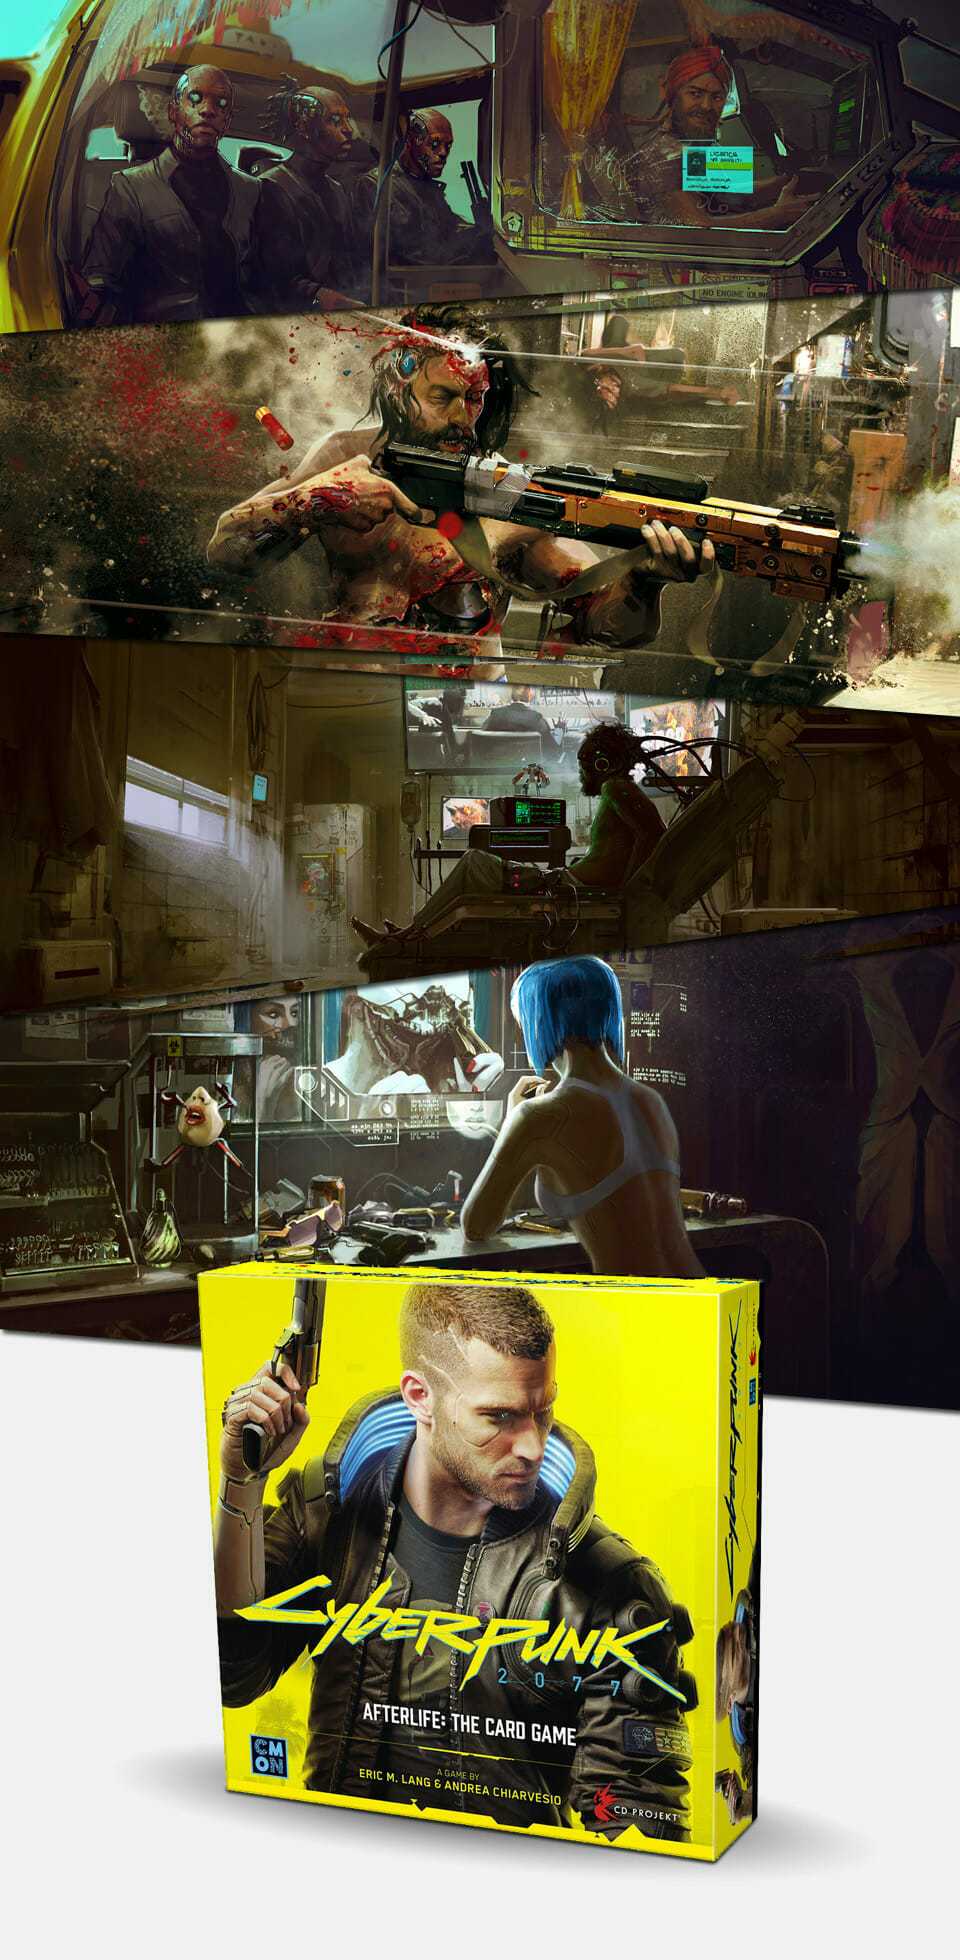 Cyberpunk 2077 - Afterlife